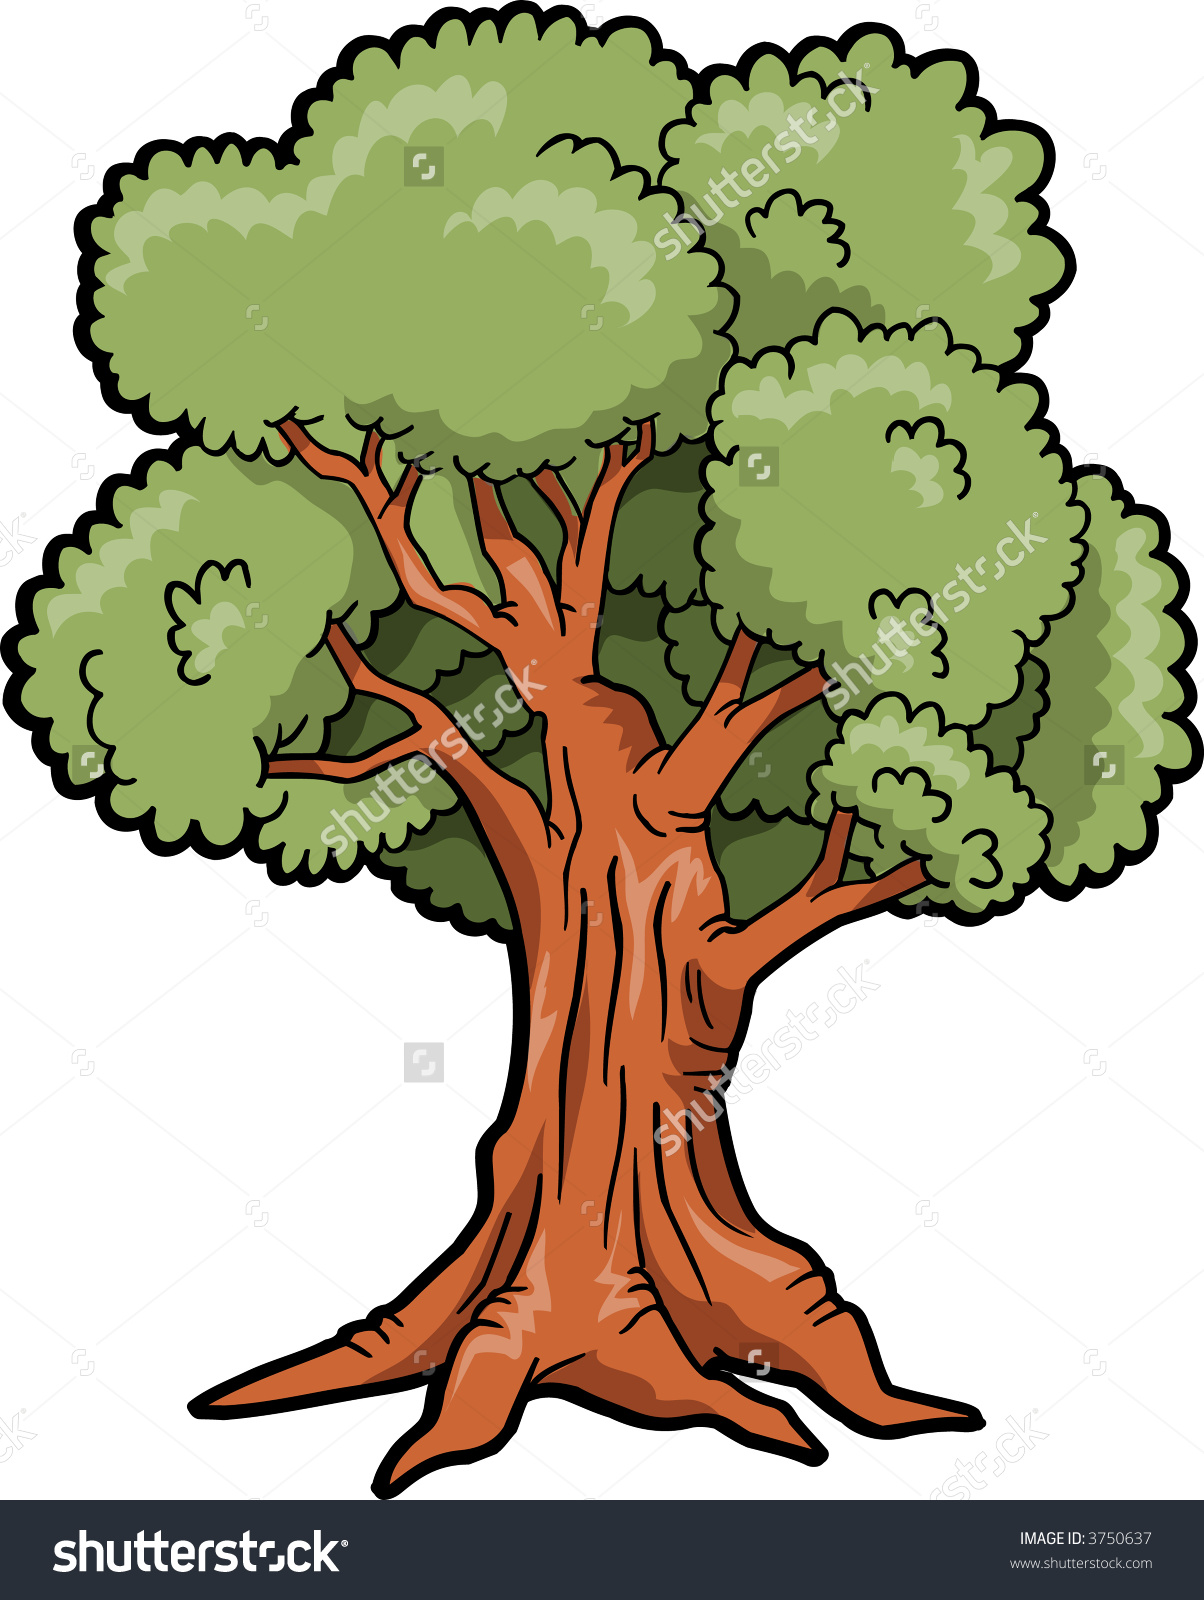 Tree clipart big tree #7